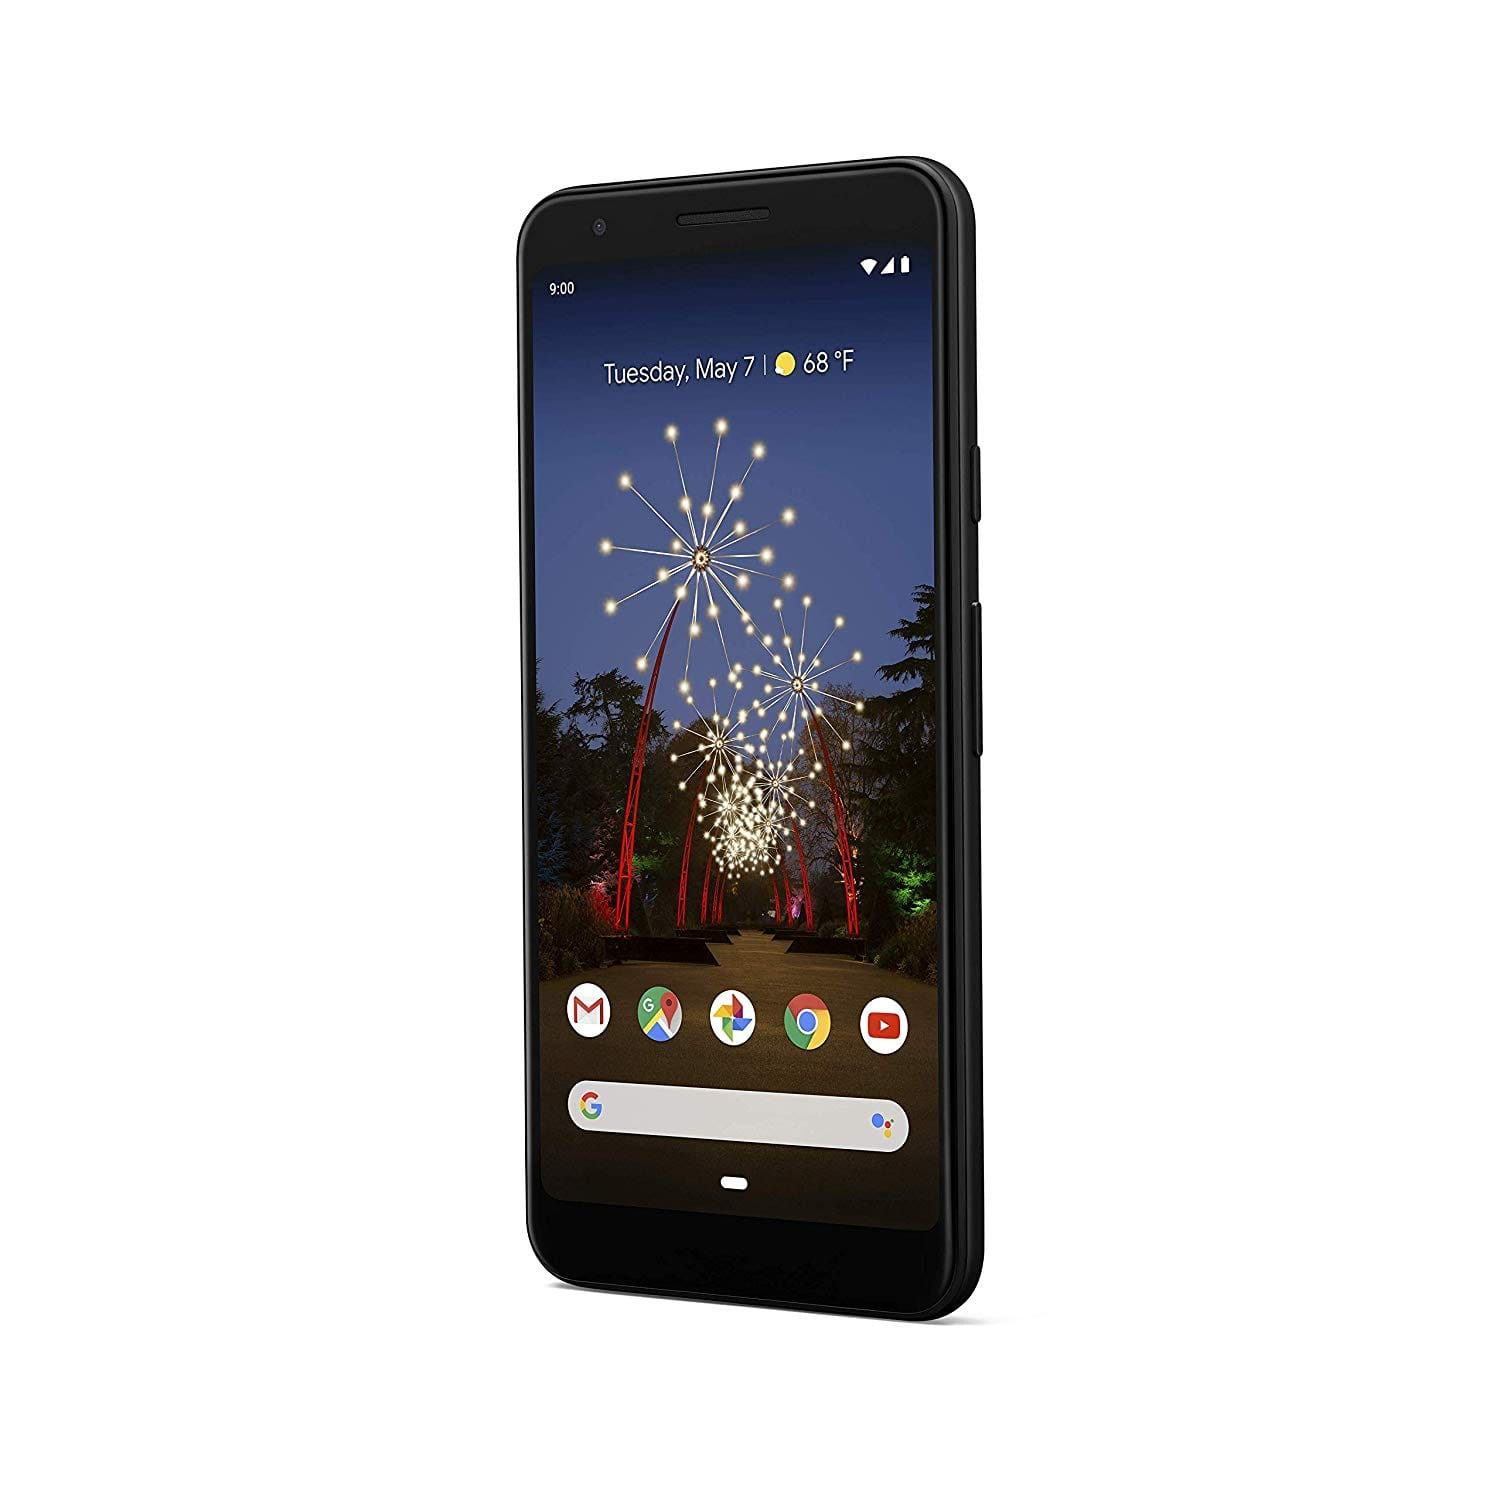 Google - Pixel 3a with 64GB Memory Cell Phone (Unlocked) - Just Black, Purple-ish, Clearly White $299 + Free Shipping